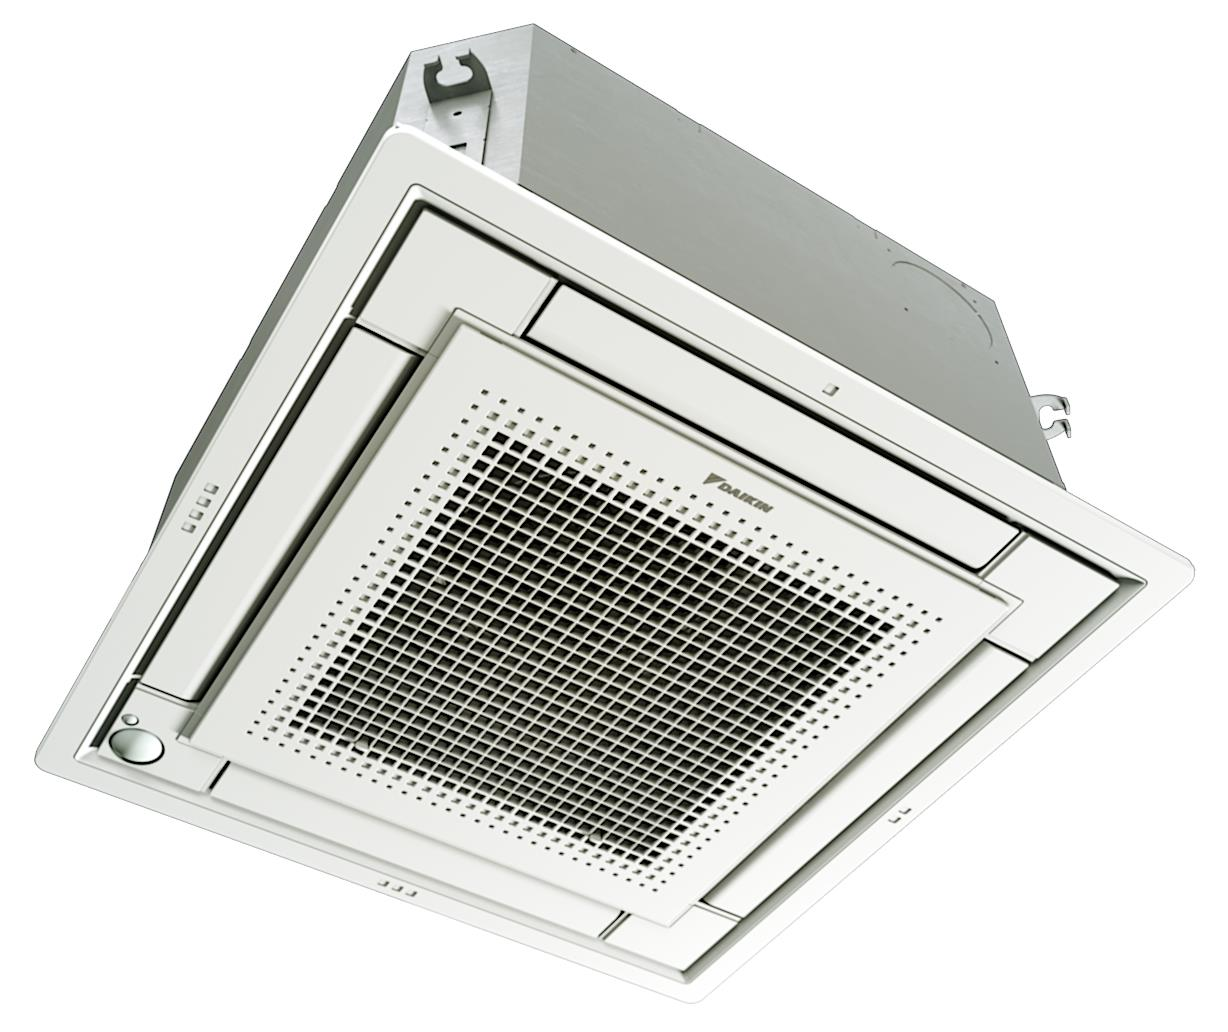 Airvent Airconditioning & Ventilation: Indoor Air Conditioning